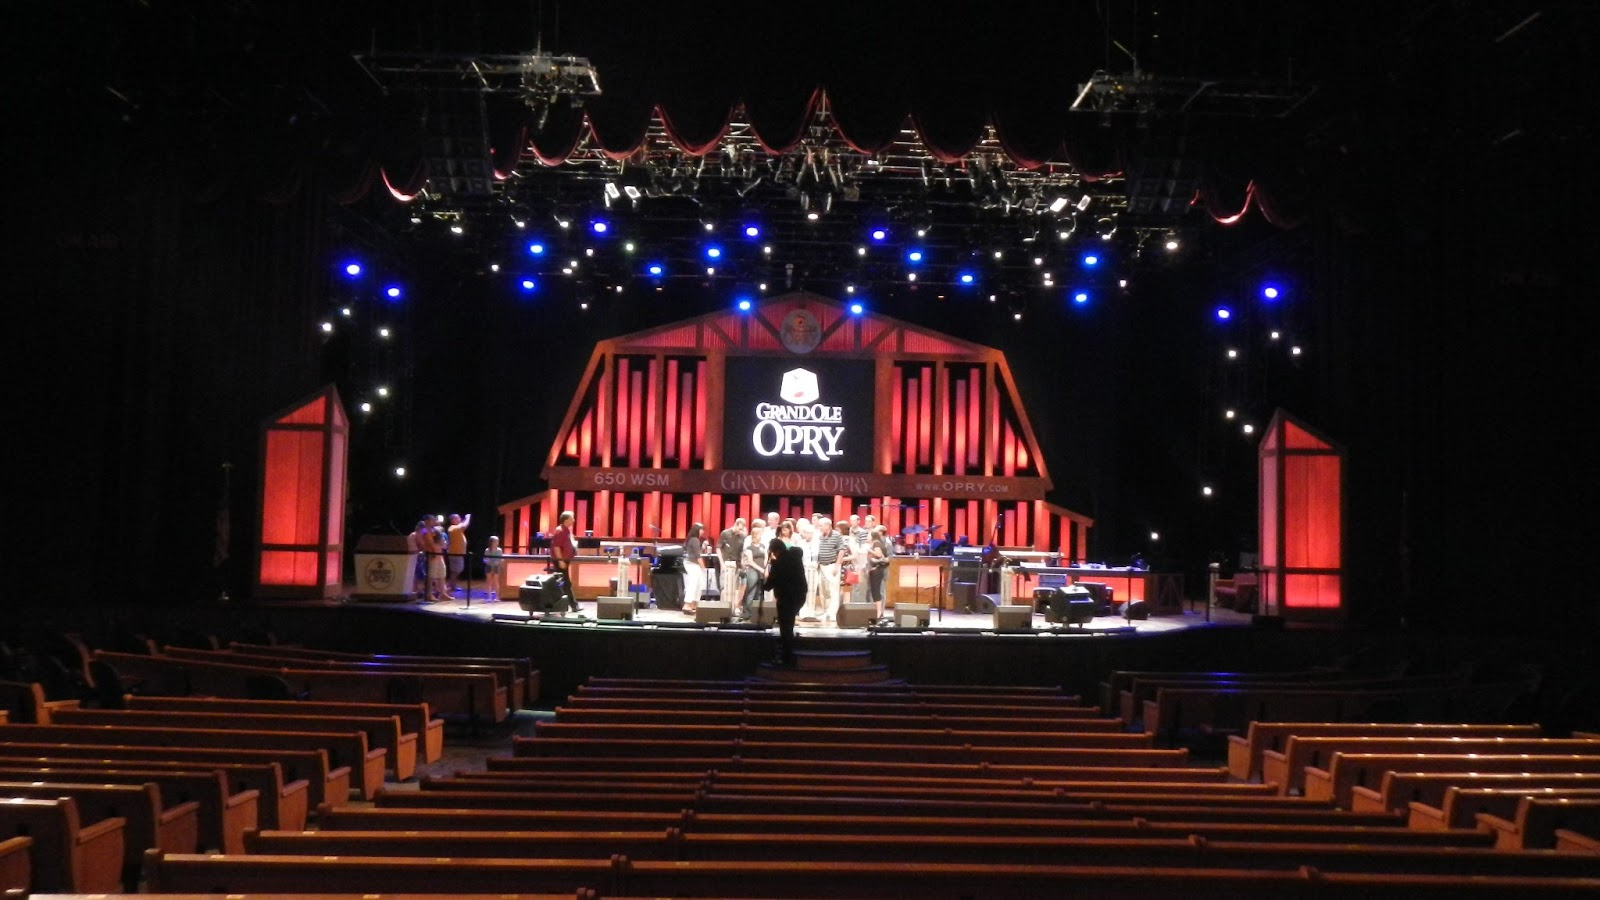 The Grand Ole Opry House Tour